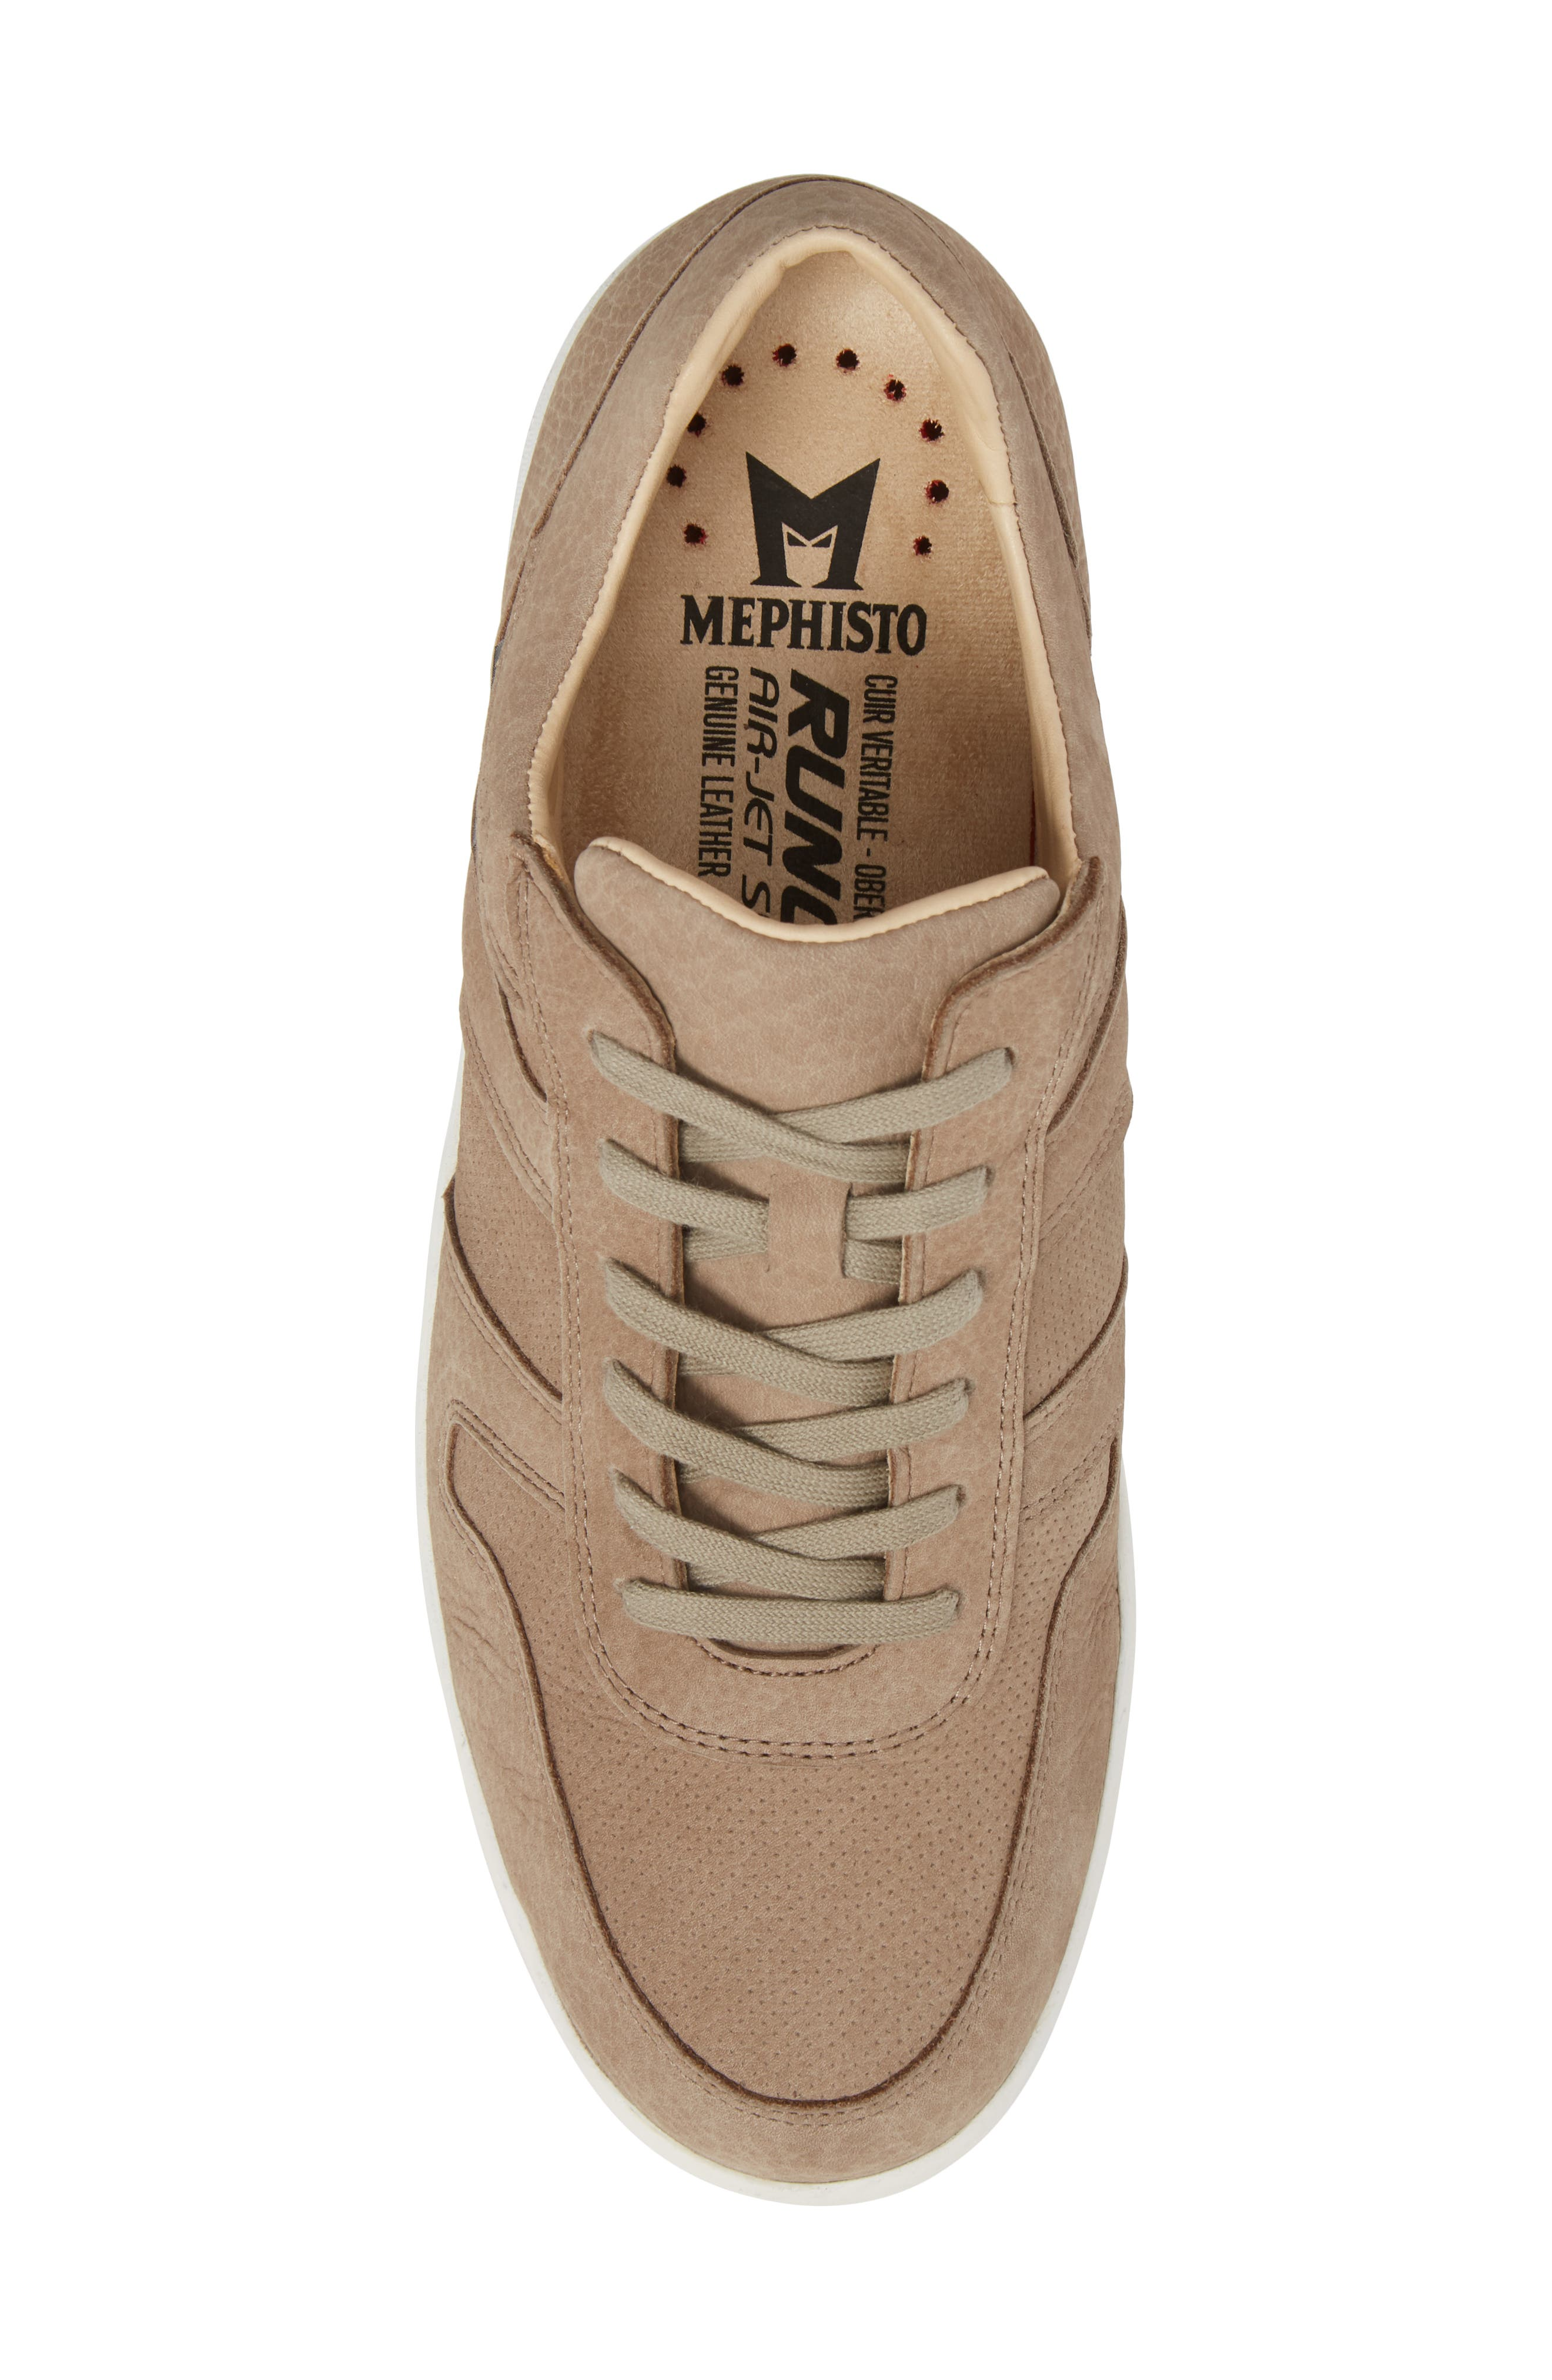 MEPHISTO, Vito Perforated Sneaker, Alternate thumbnail 5, color, SAND